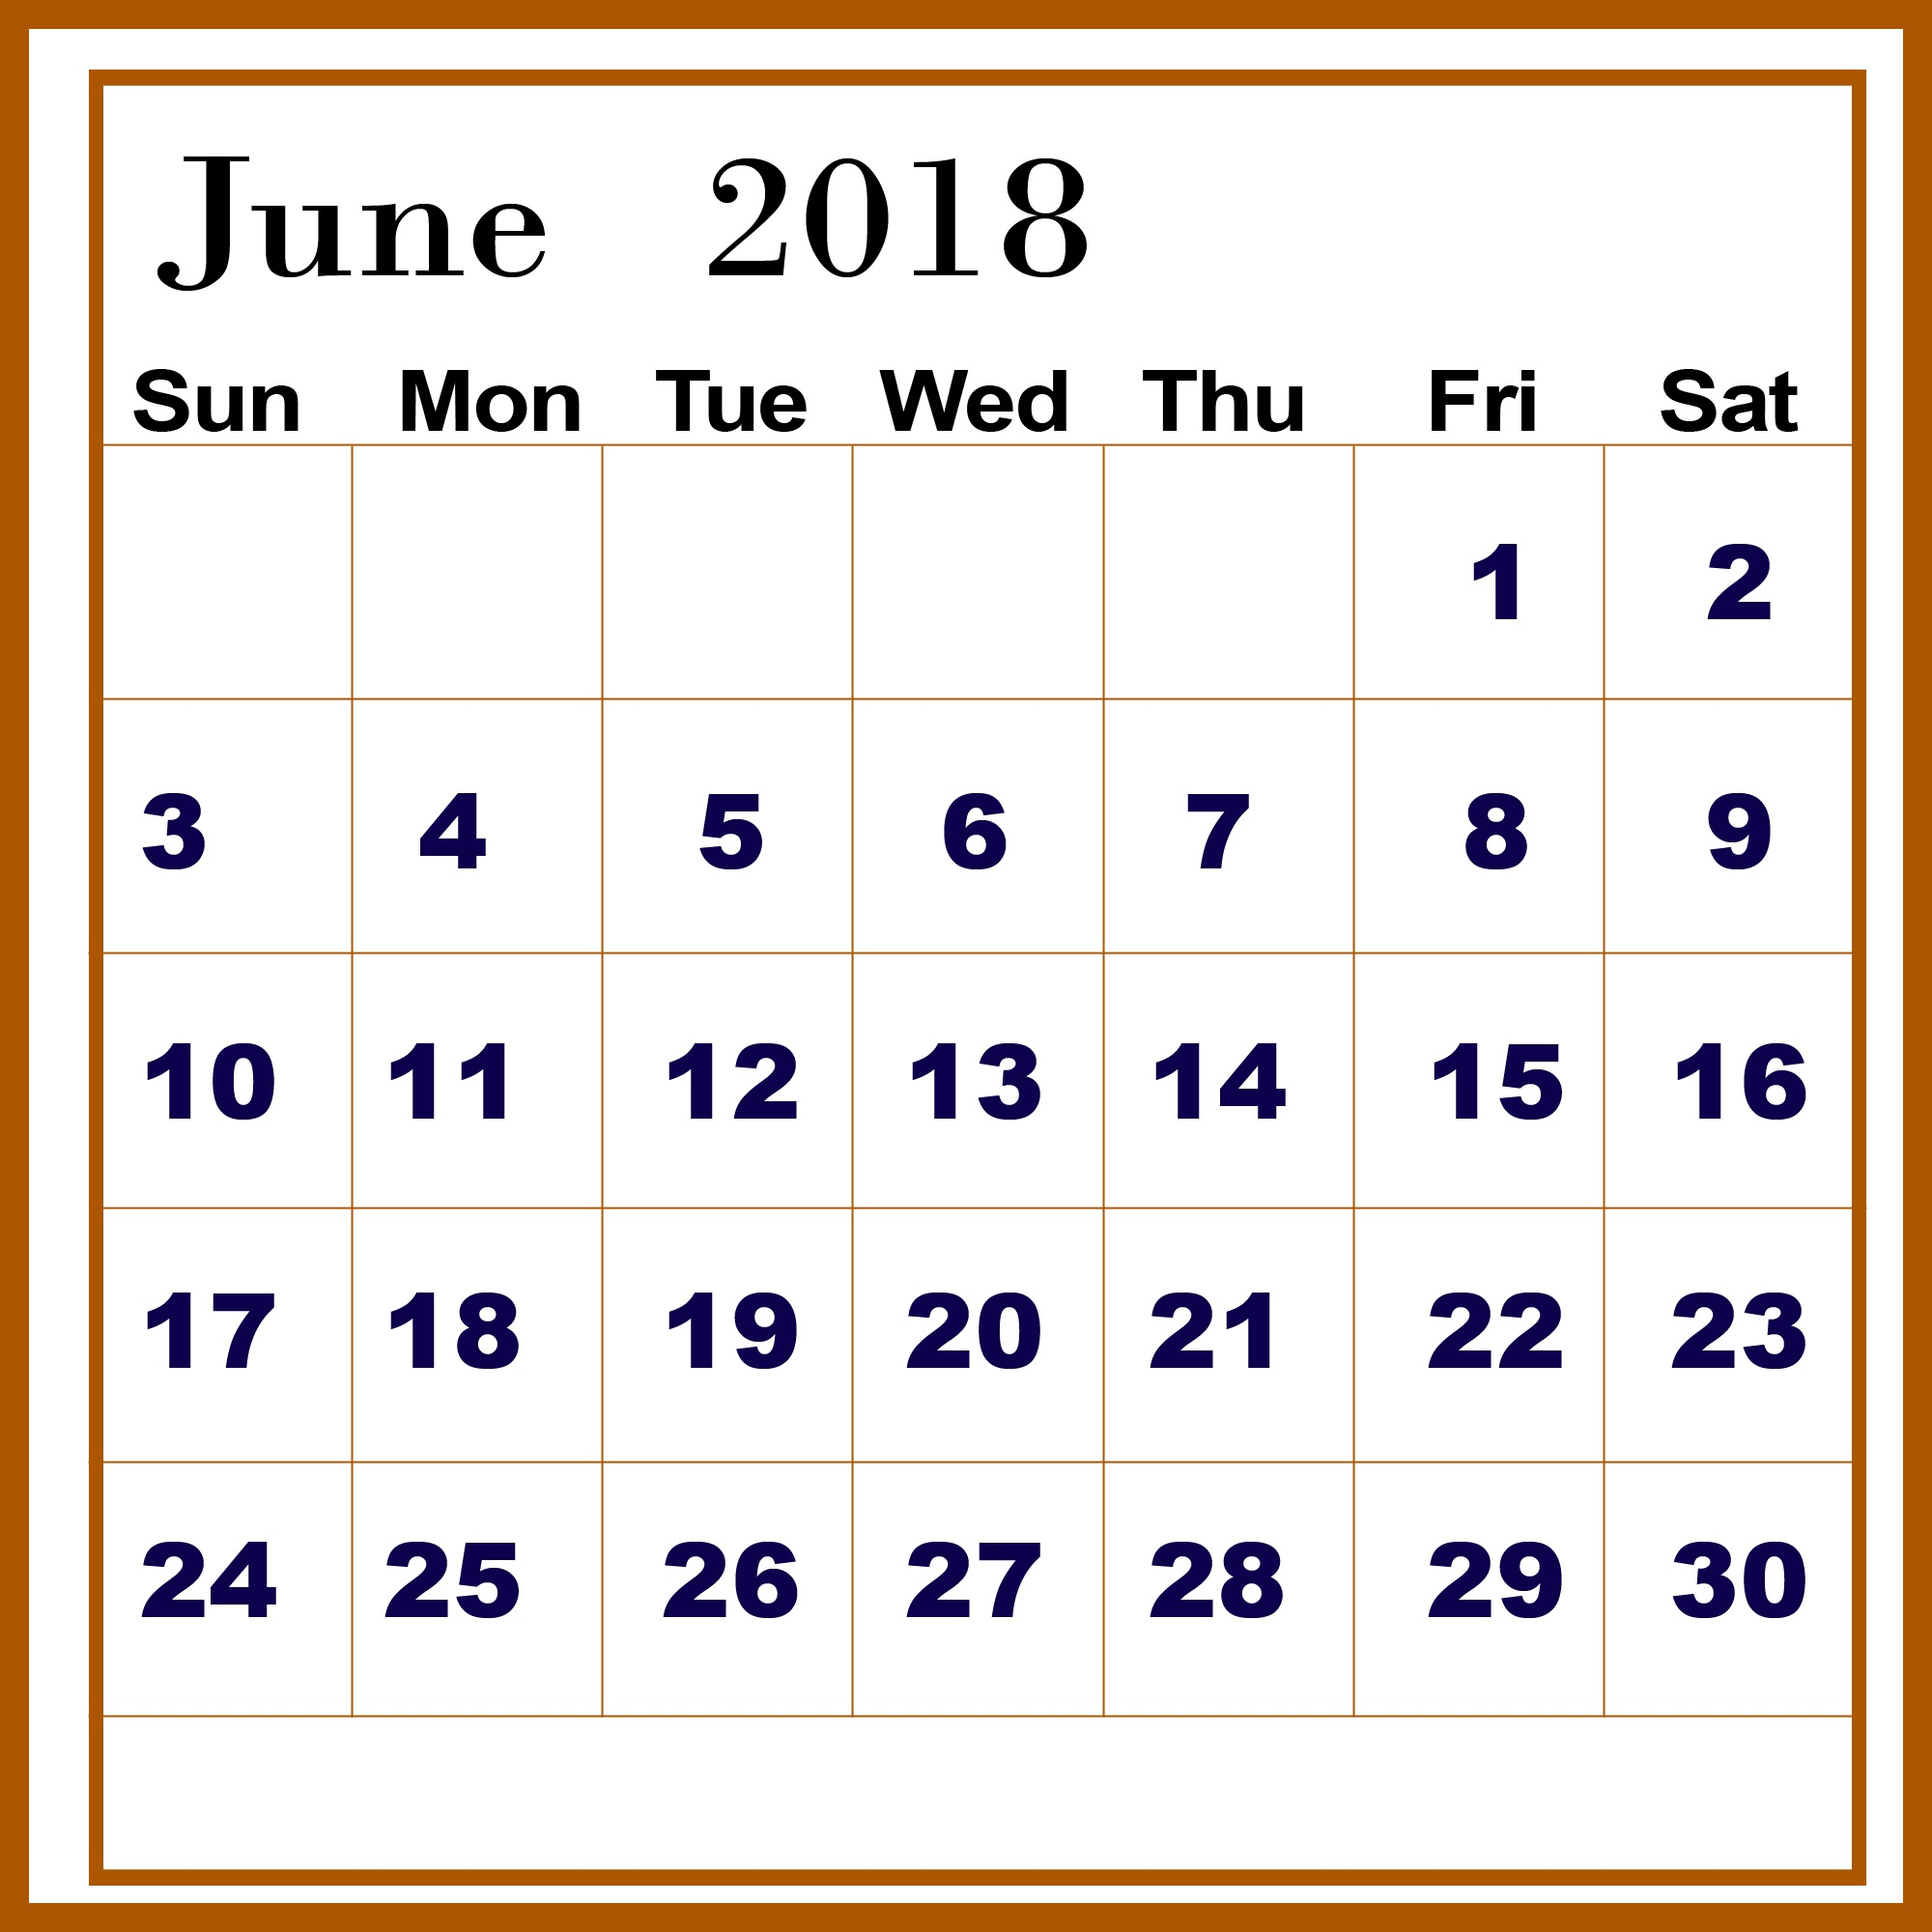 Latest June 2018 Calendar Template Large Number